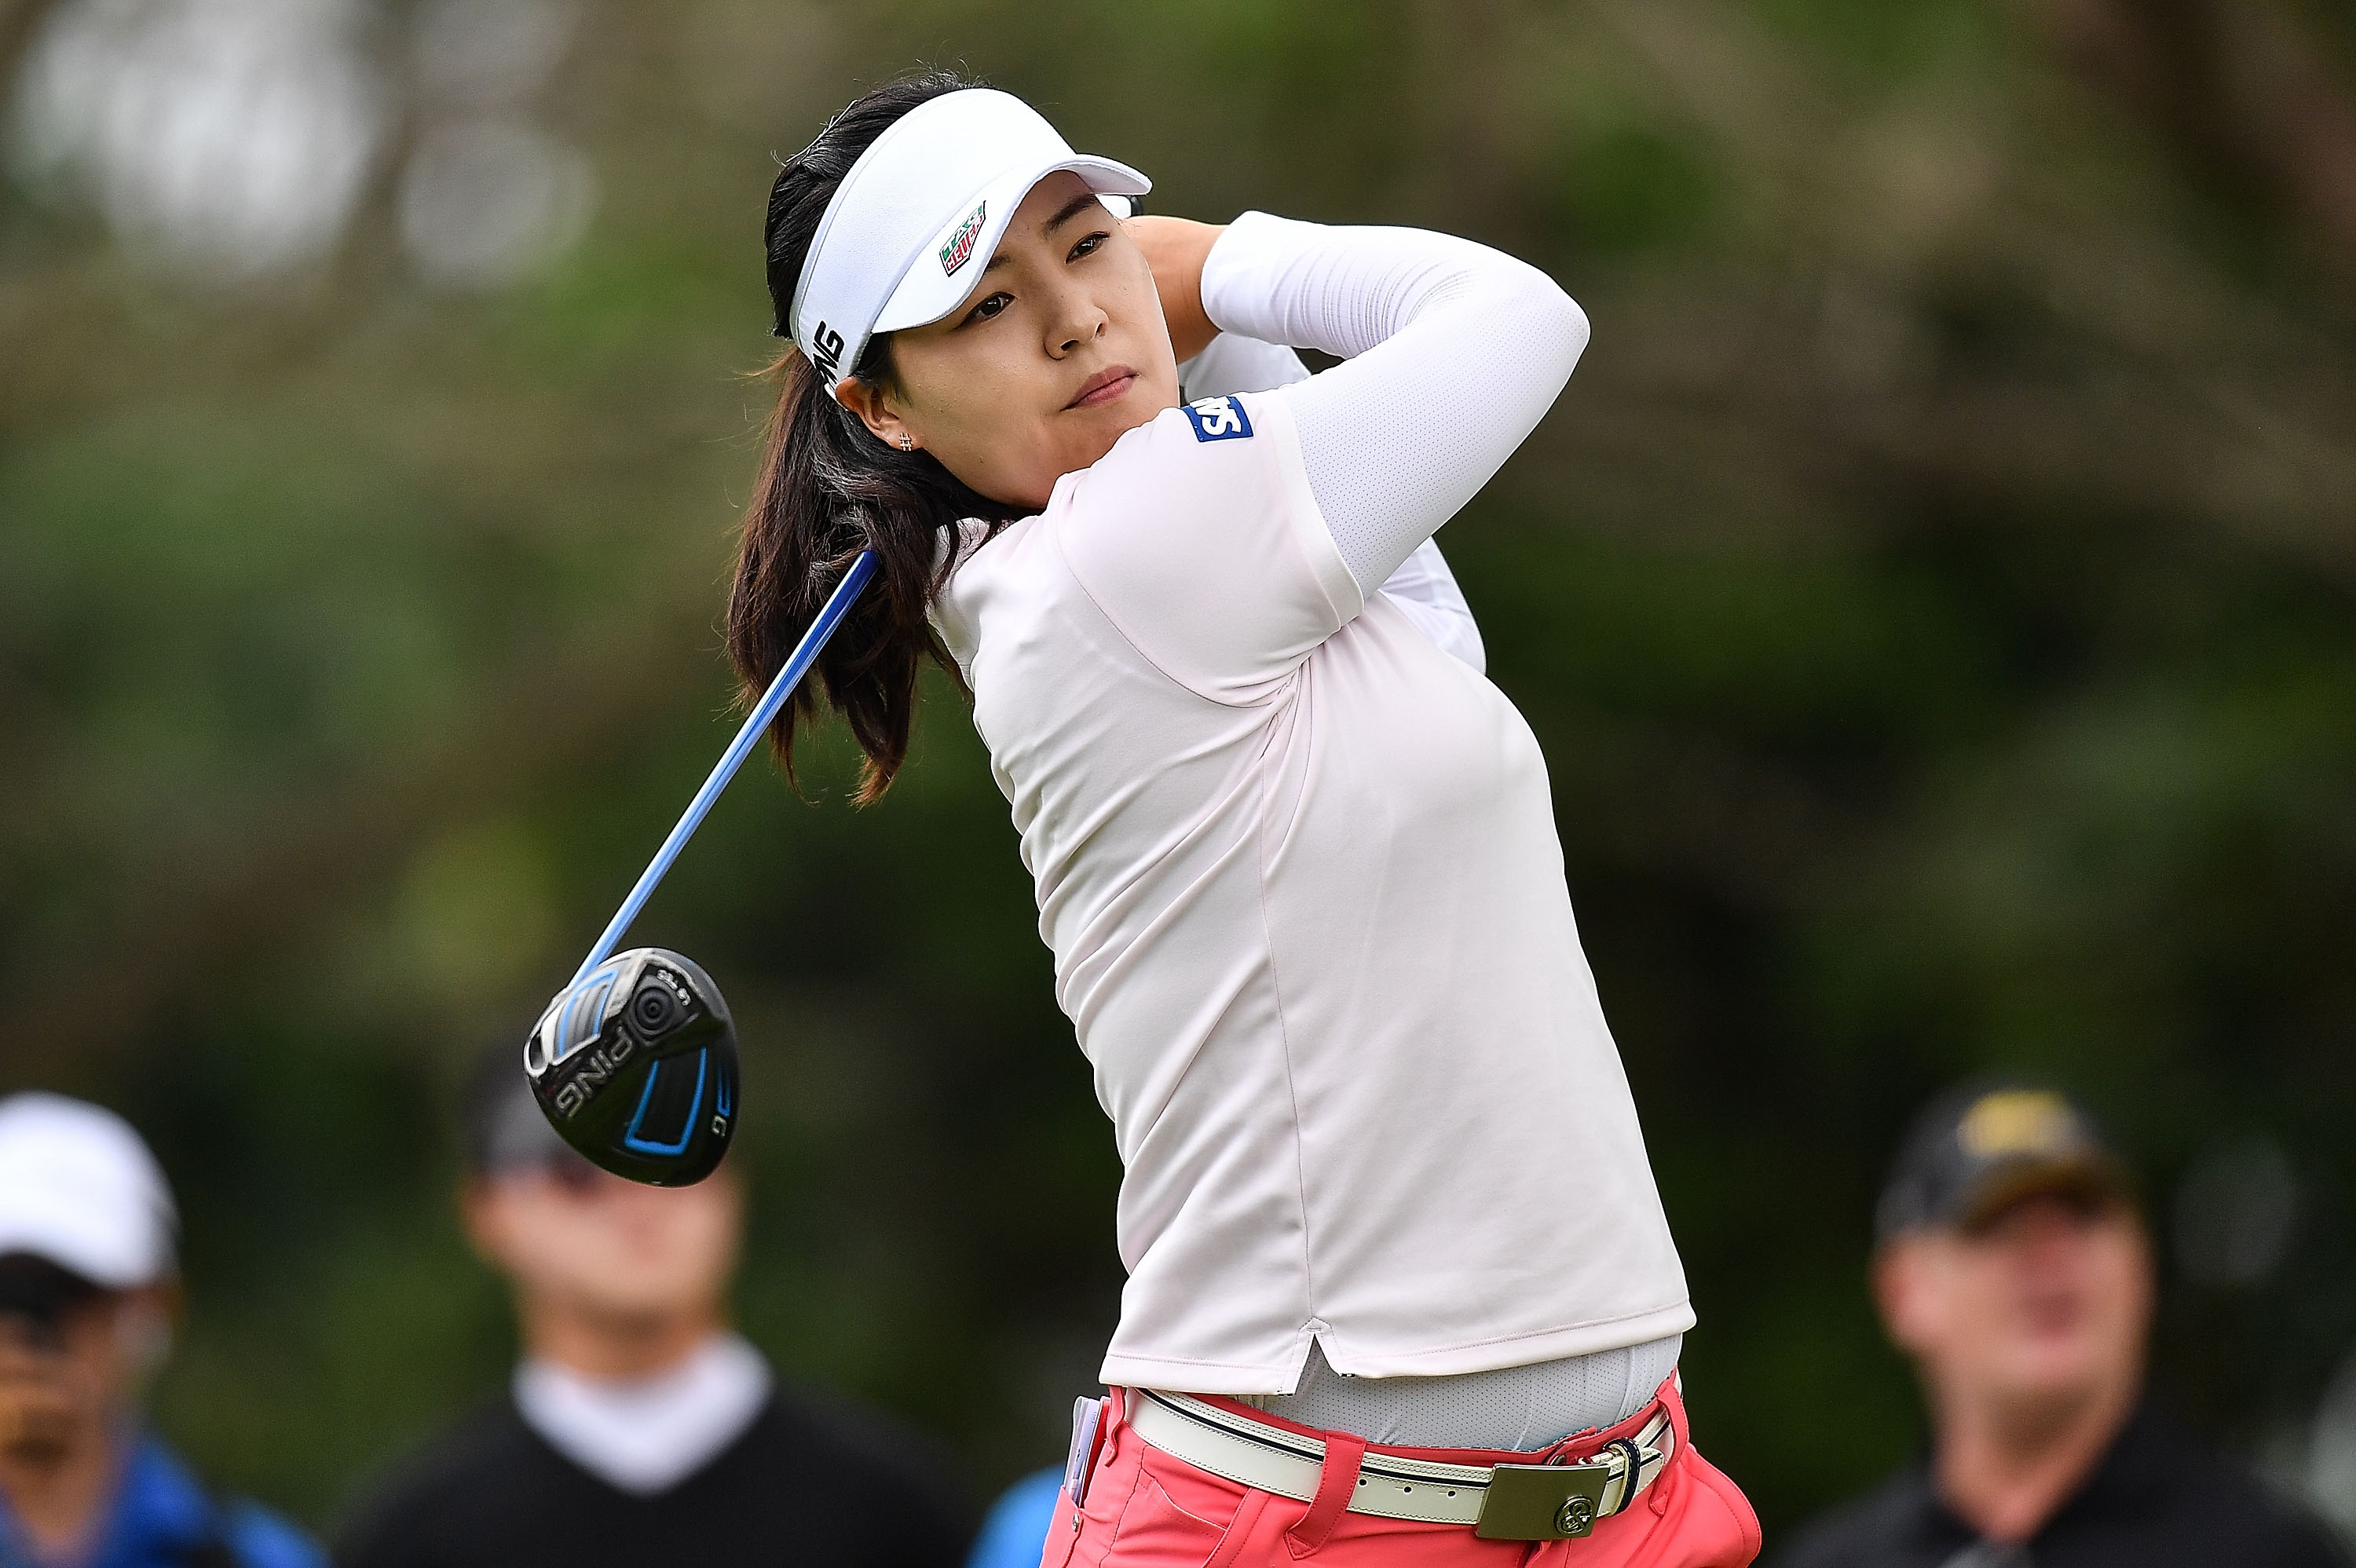 Though she may not be as well known as her 22-year-old male counterparts, Chun boasts a record and ranking that speak for themselves. She's already a two-time major champion and is currently third in the Rolex World Rankings.  Also receiving votes: Jon Rahm, Matthew Fitzpatrick